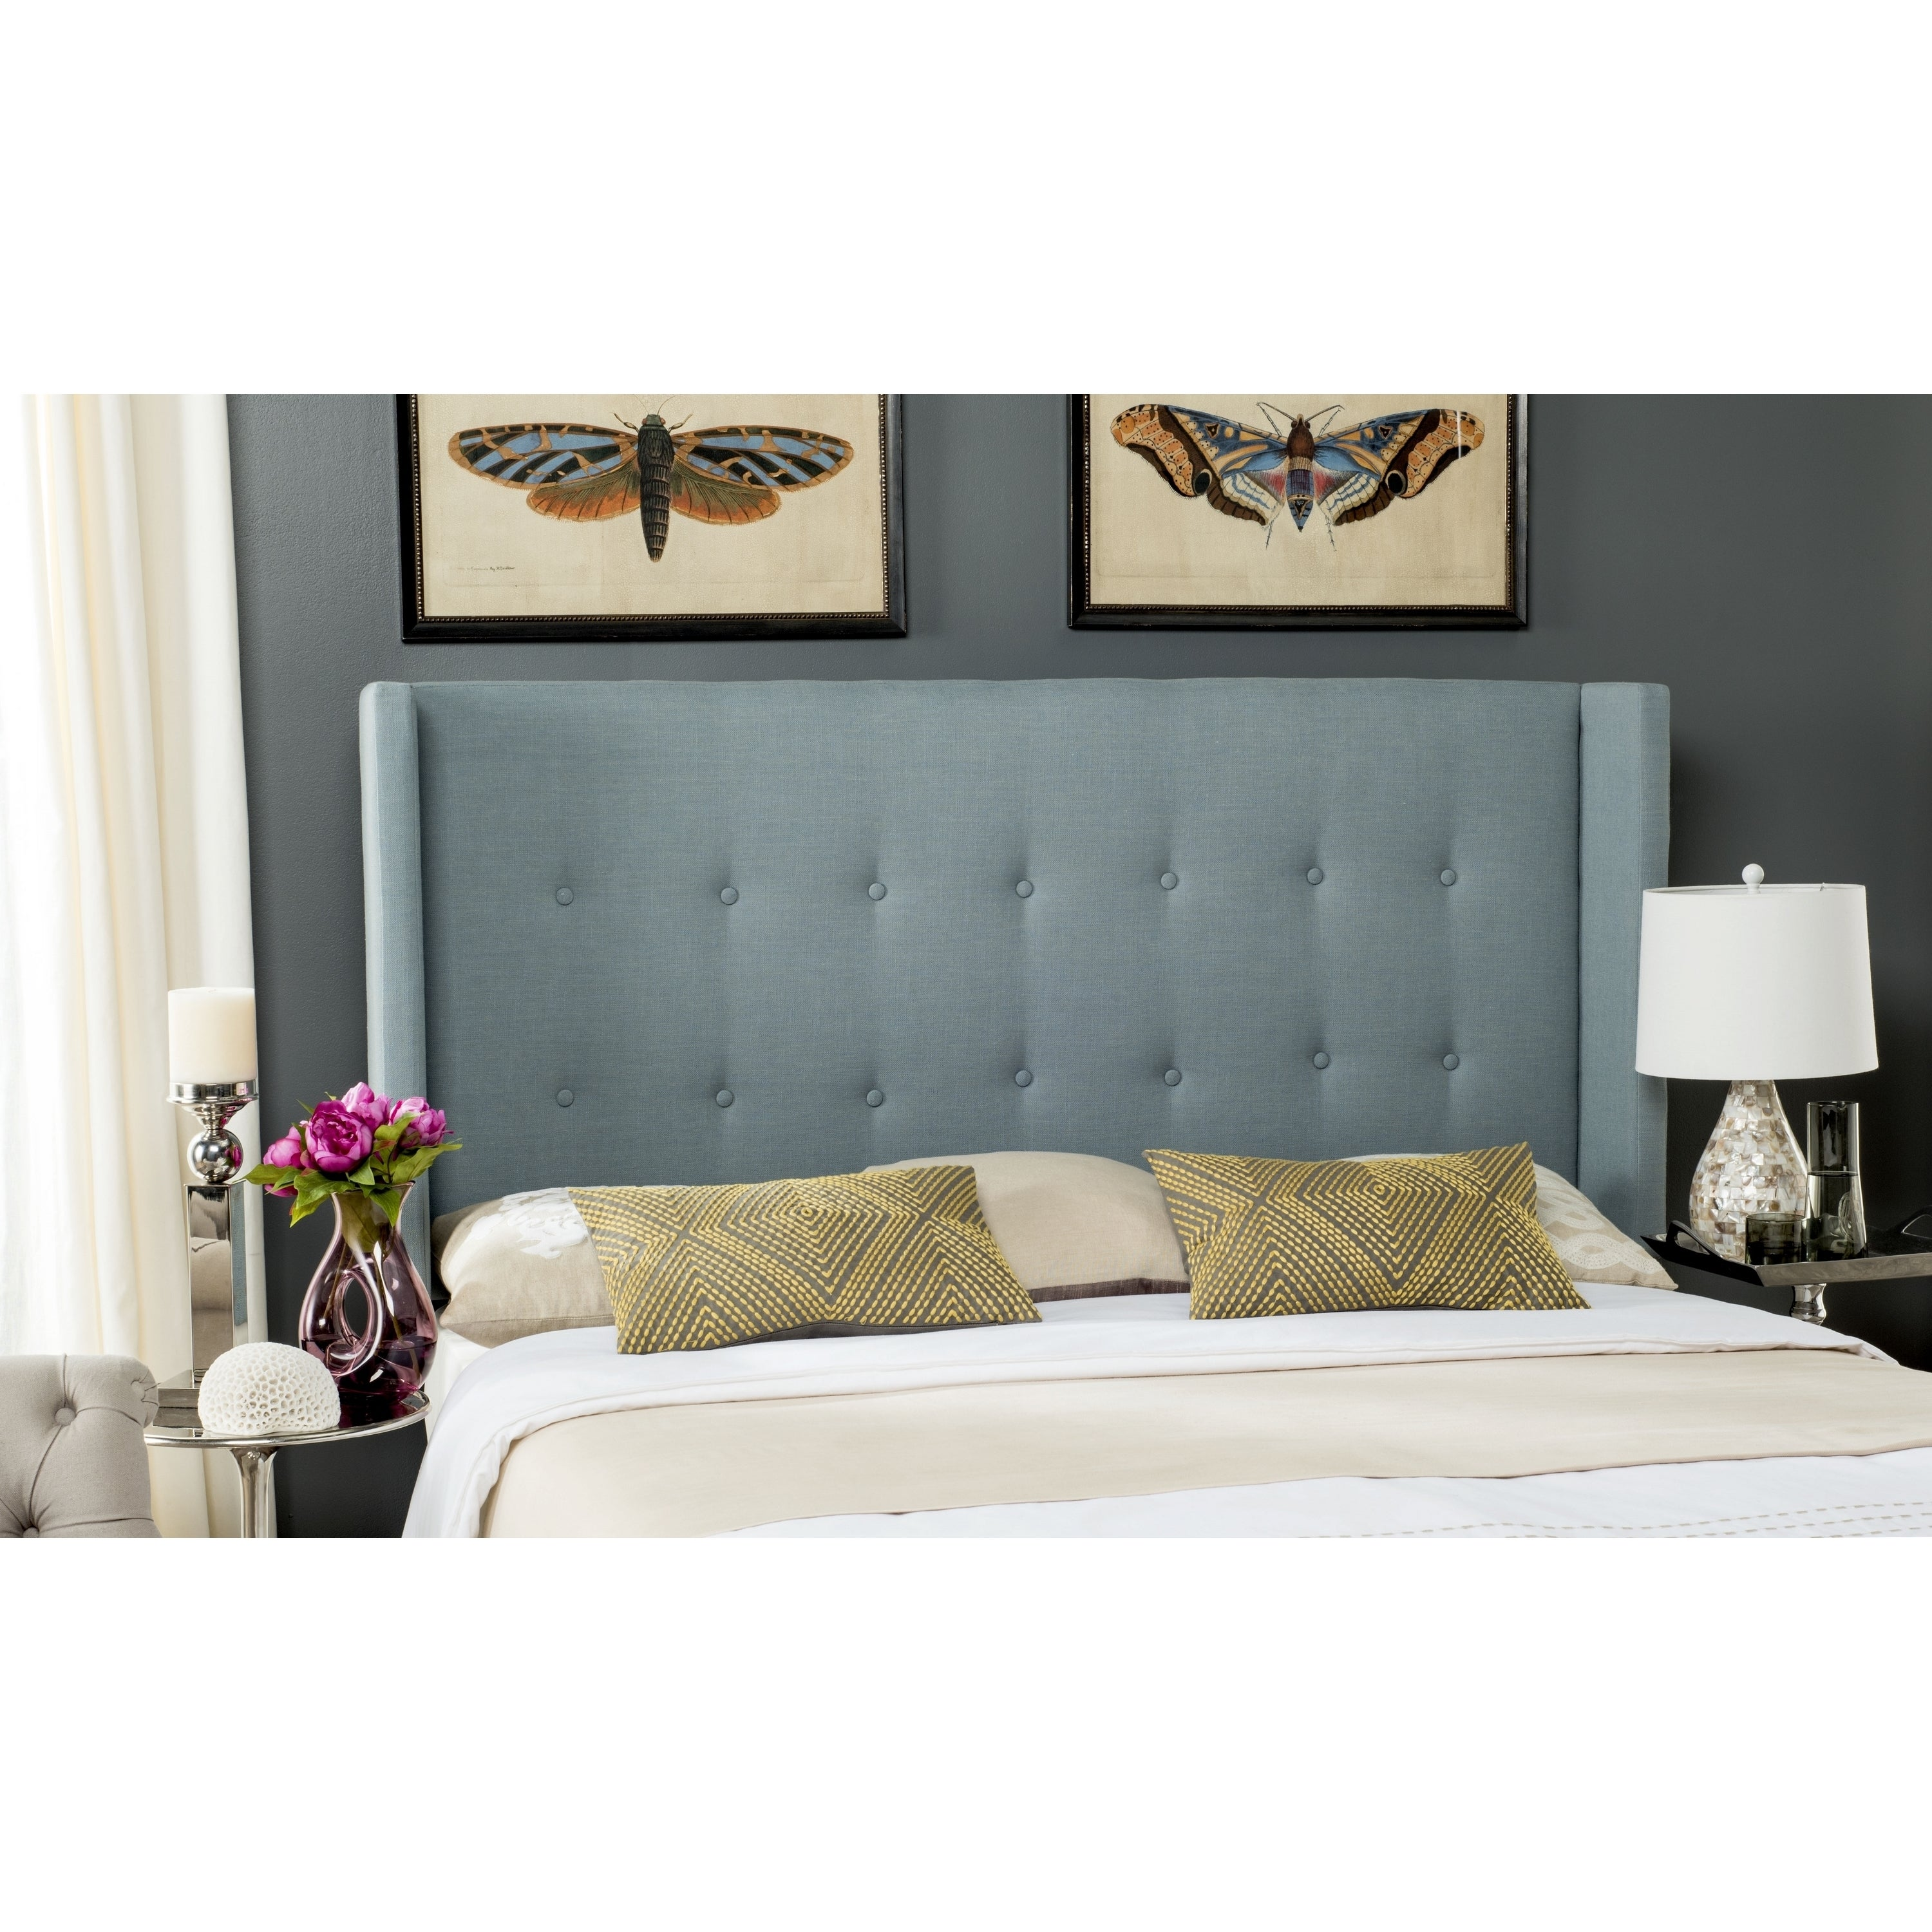 Picture of: Shop Safavieh Damon Sky Blue Upholstered Tufted Wingback Headboard King Overstock 11098674